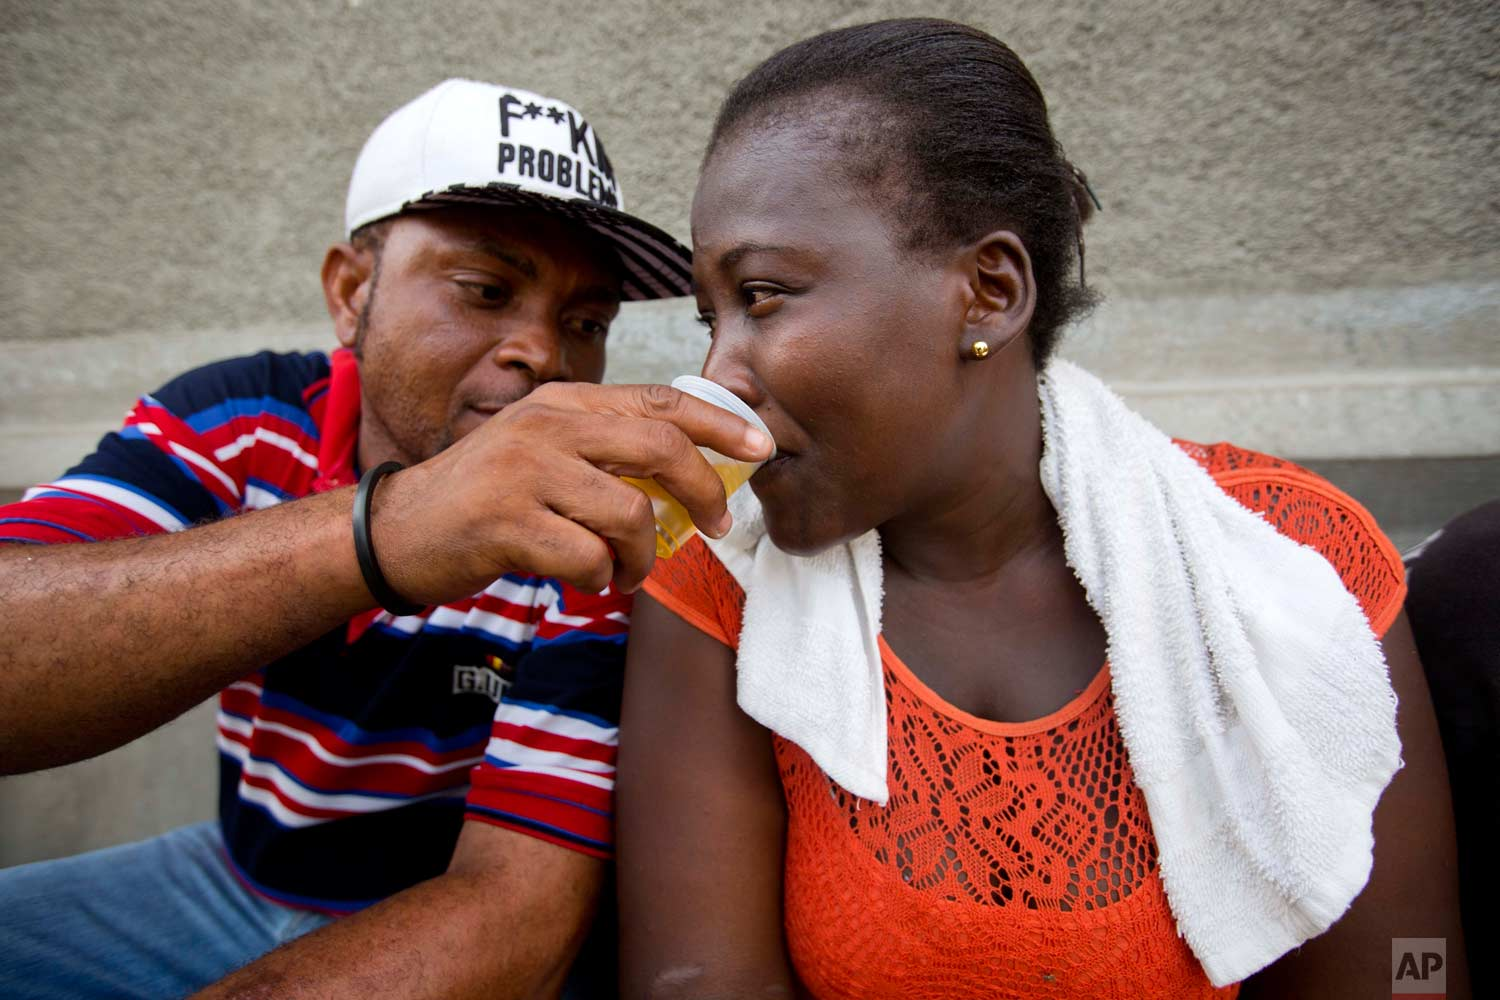 A man shares his clairin as he sits on the sidewalk where a vendor sells the sugar-based alcoholic drink in the Cite Soleil area of Port-au-Prince, Haiti, Tuesday, July 11, 2017. Clairin is rum's rustic cousin, a drink that's much cheaper and relatively rare outside this struggling Caribbean country. (AP Photo/Dieu Nalio Chery)